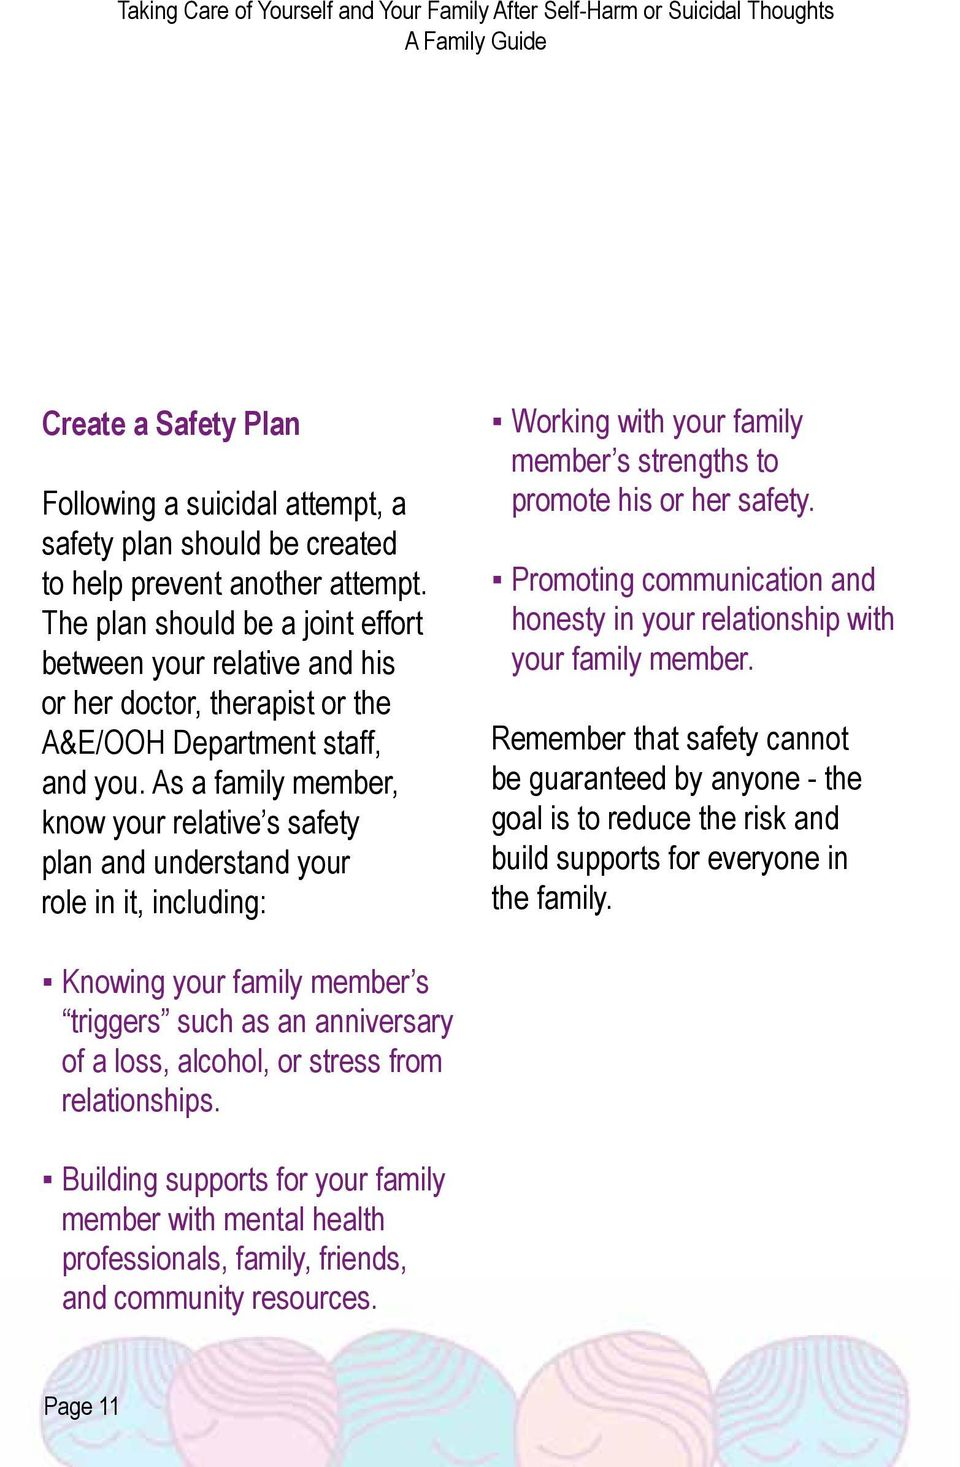 As a family member, know your relative s safety plan and understand your role in it, including: Working with your family member s strengths to promote his or her safety.